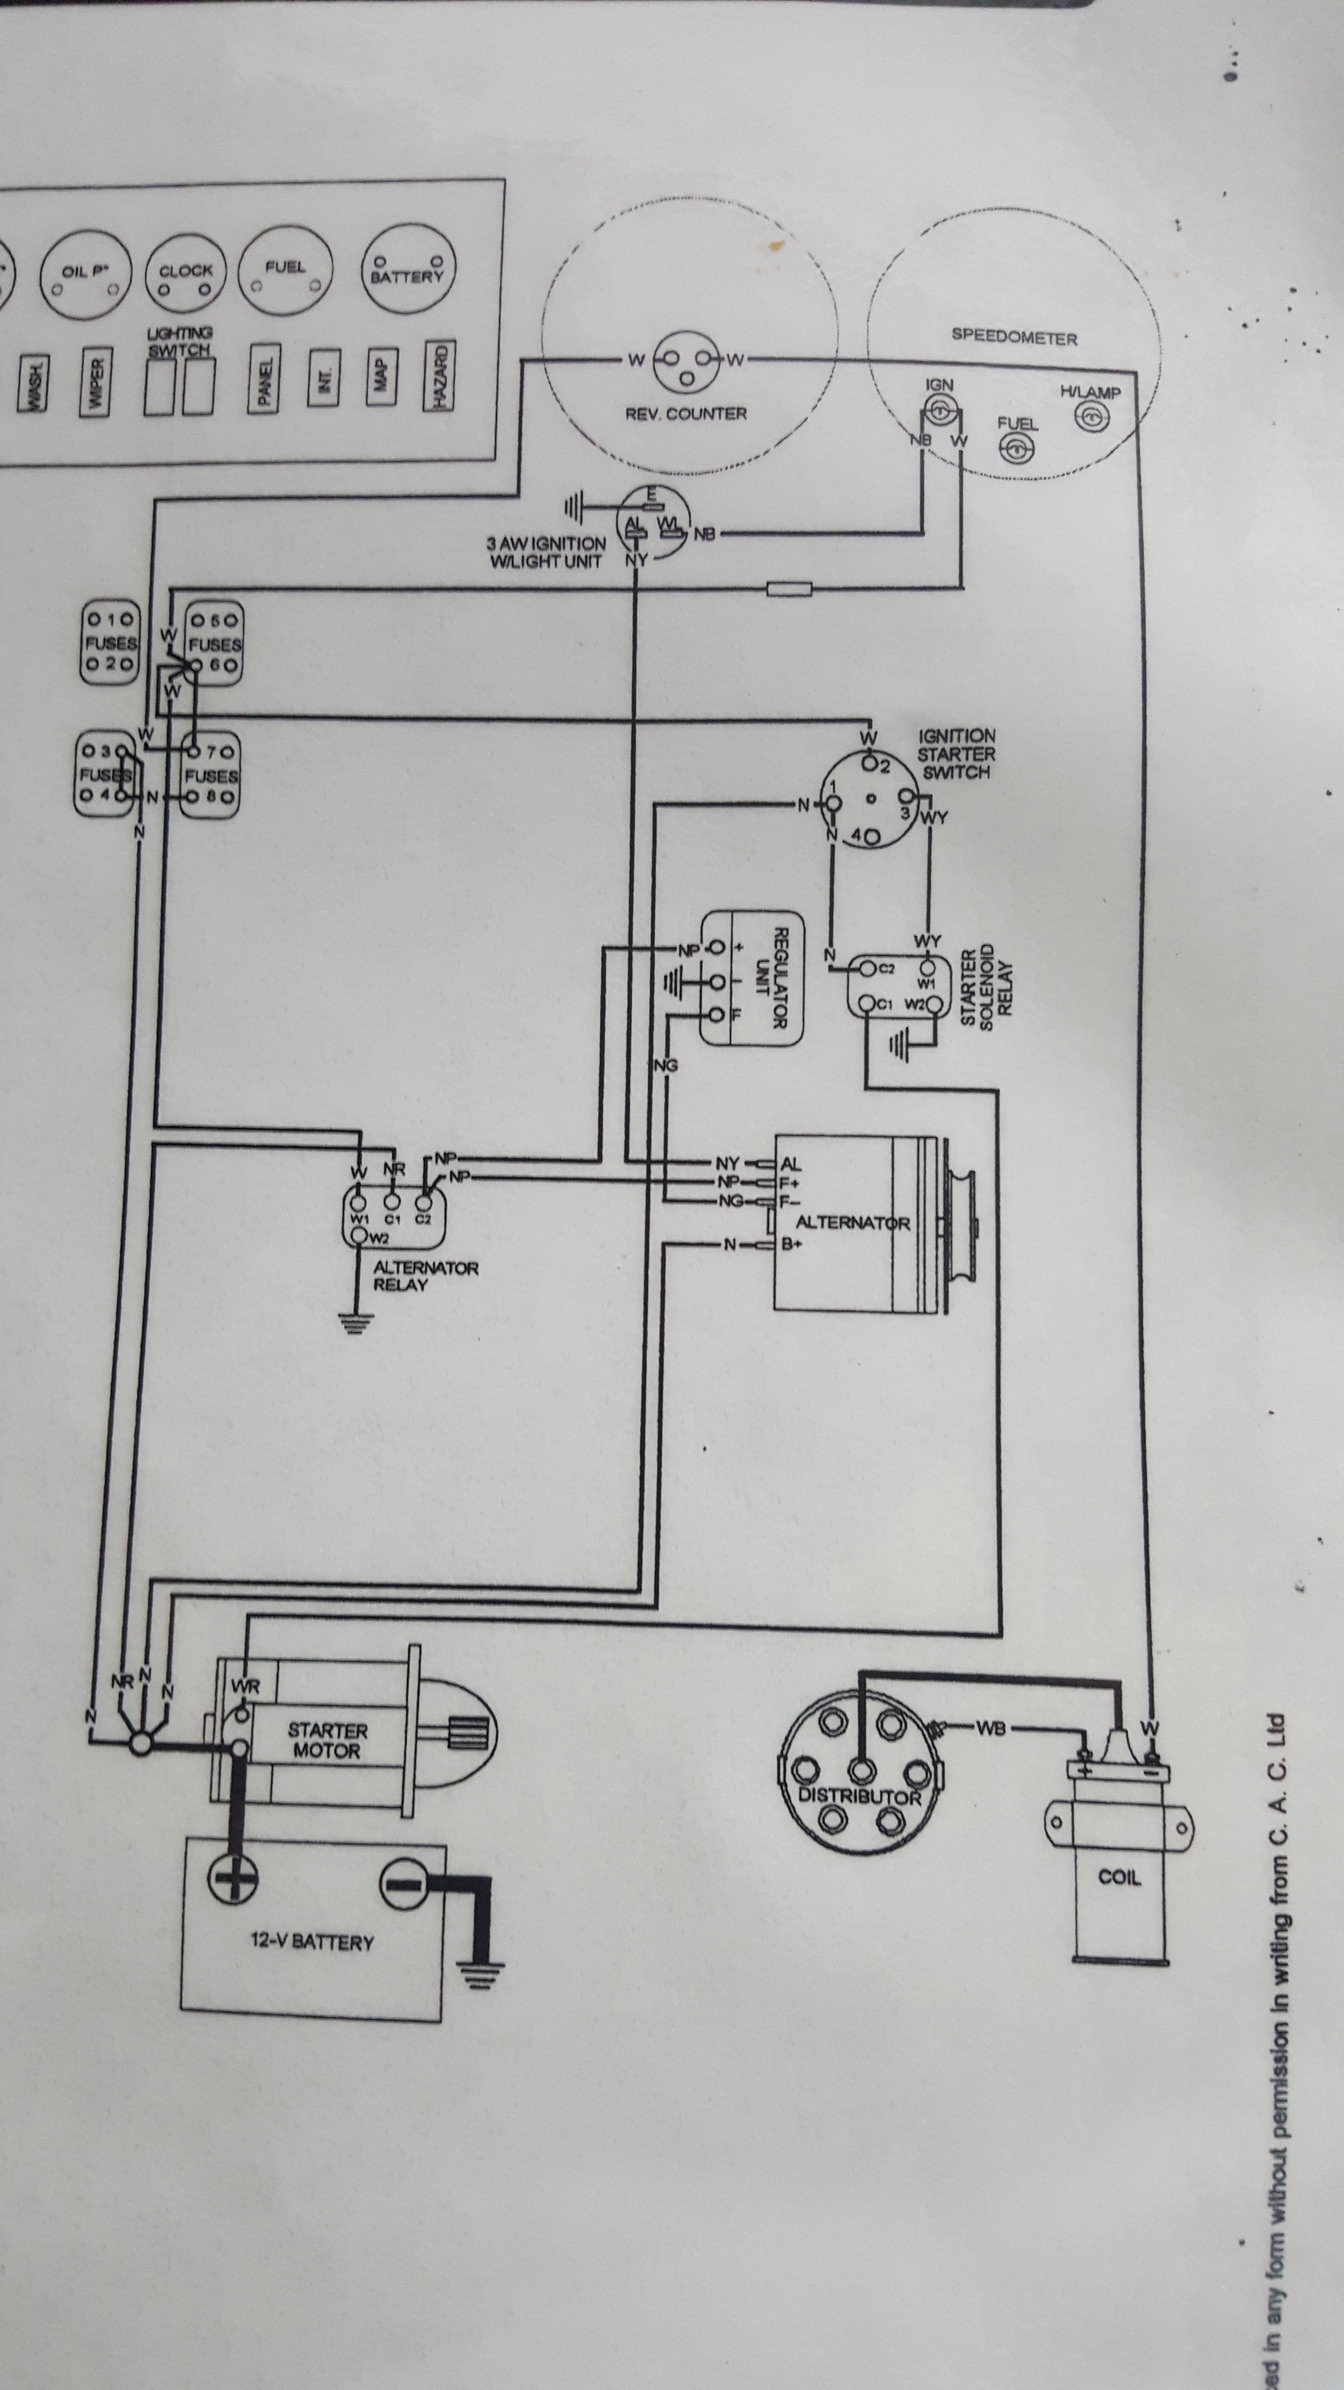 Questions For E Type 69 Ignition Wiring - E-type